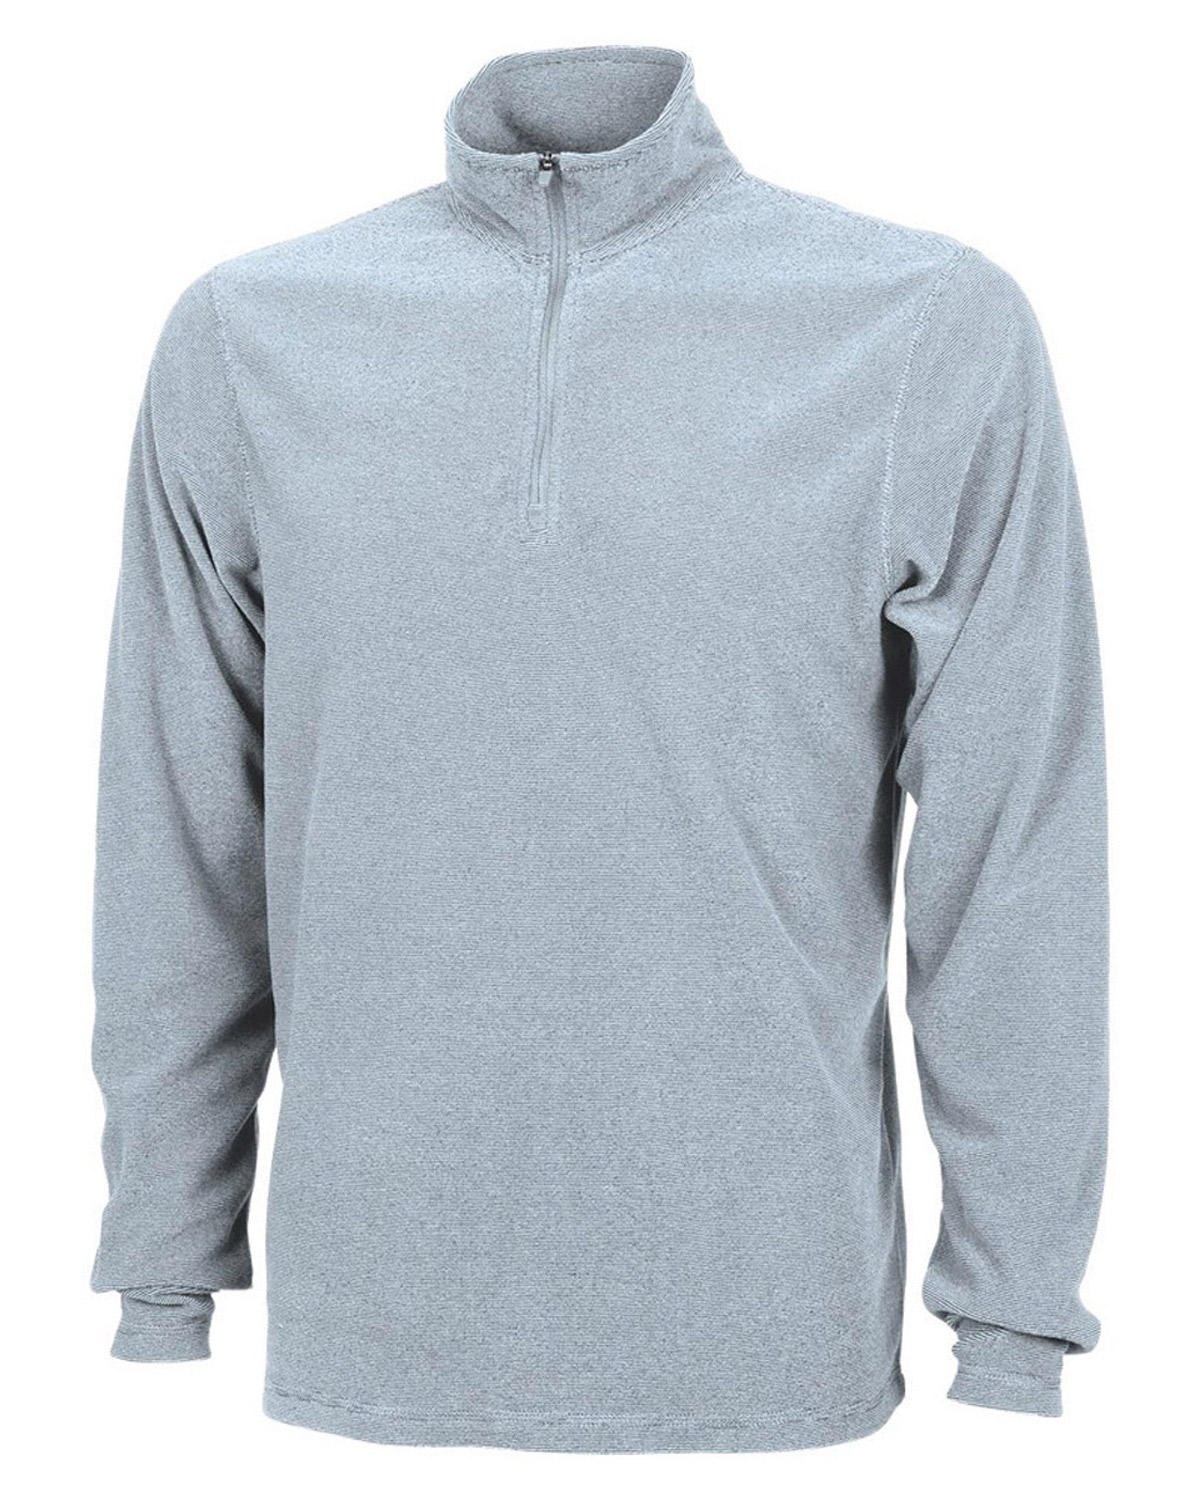 Charles River Apparel 9676 Men's Basin Fleece at GotApparel